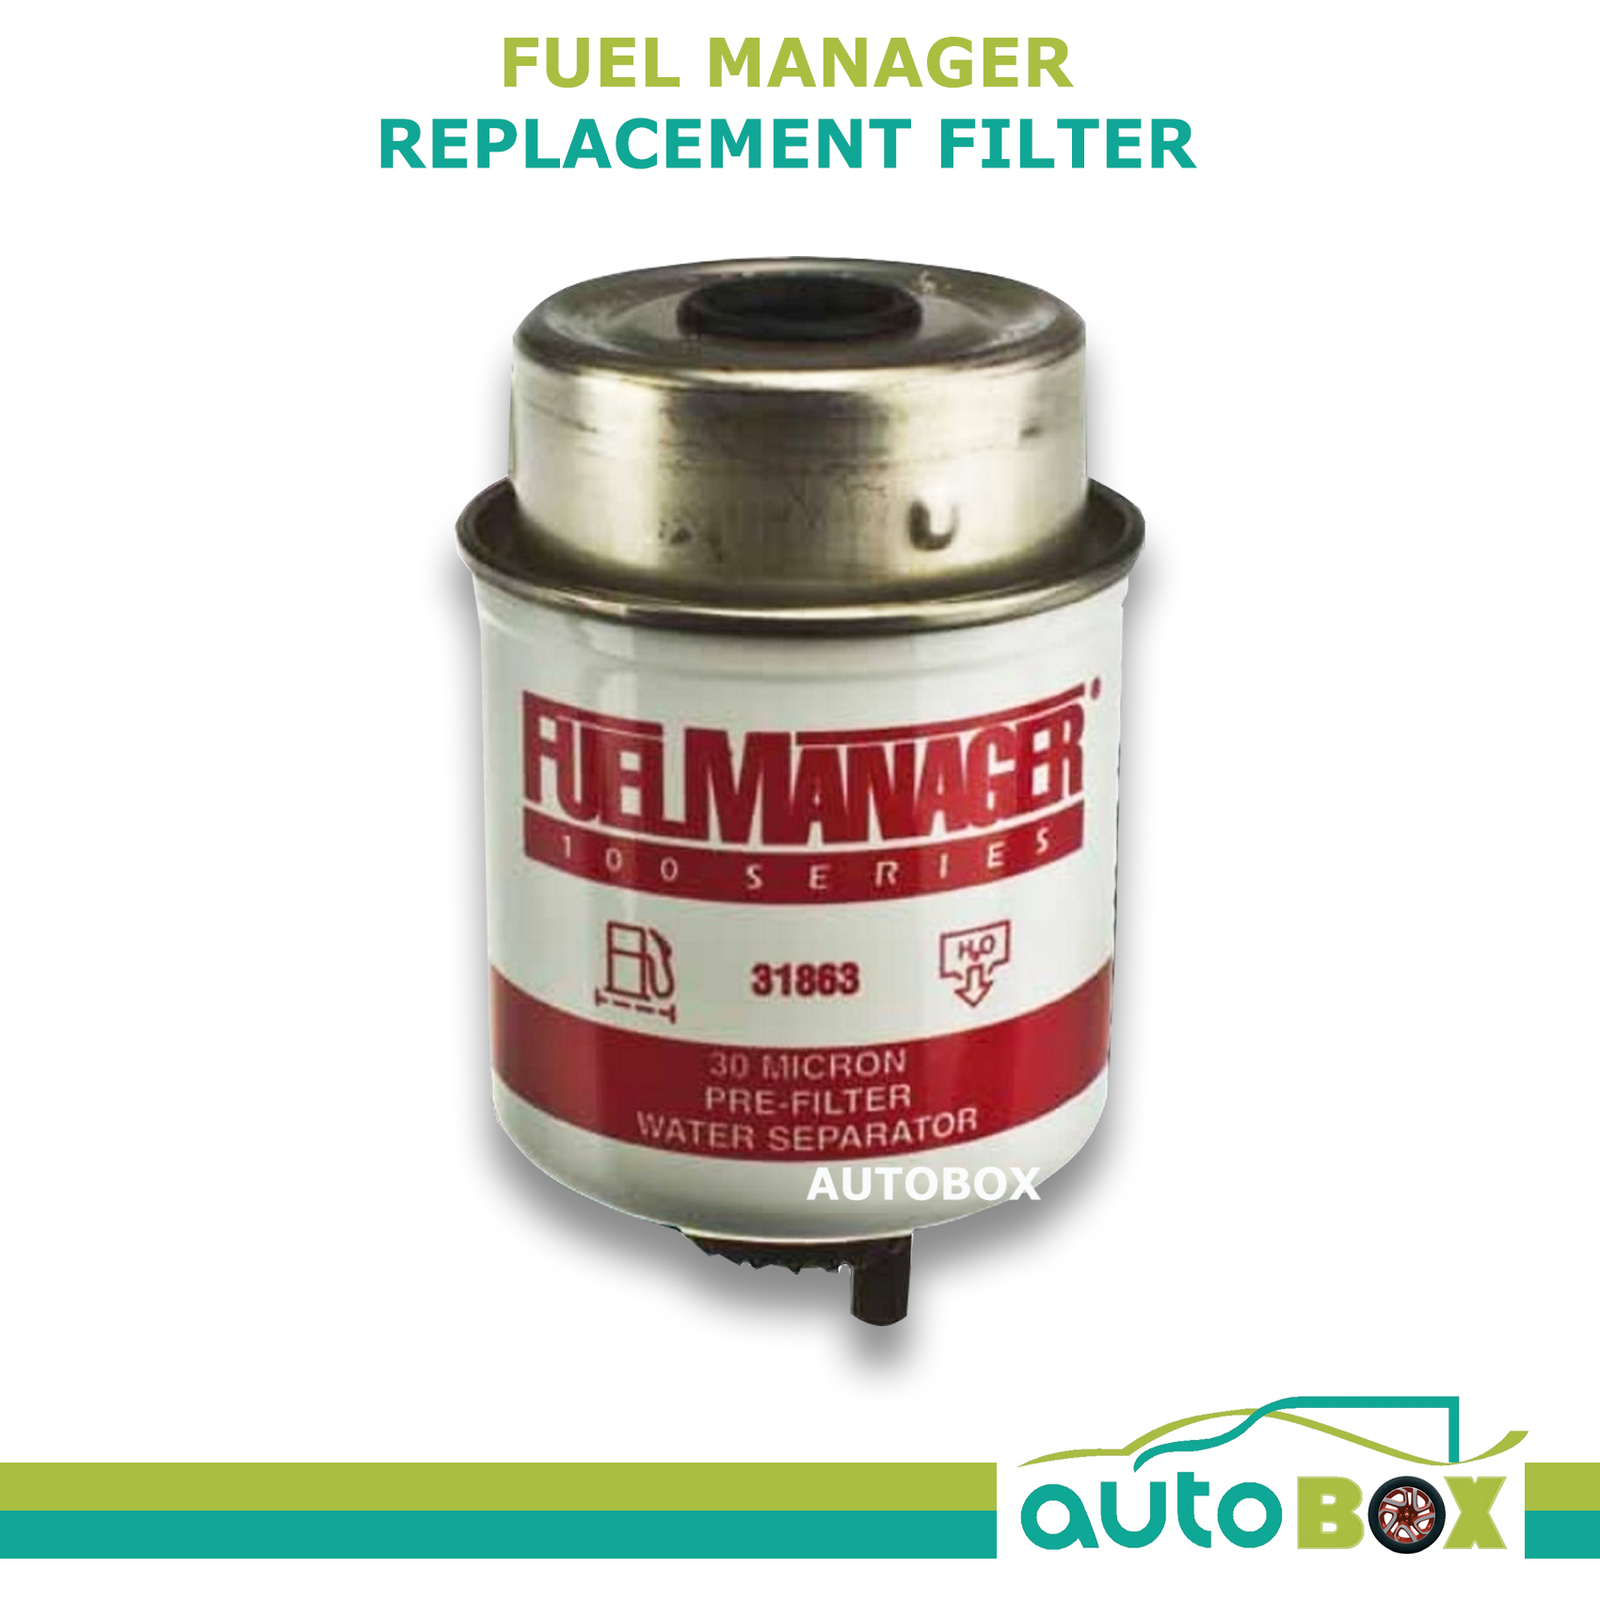 Fuel Filter Replacement : Fuel manager replacement filter diesel